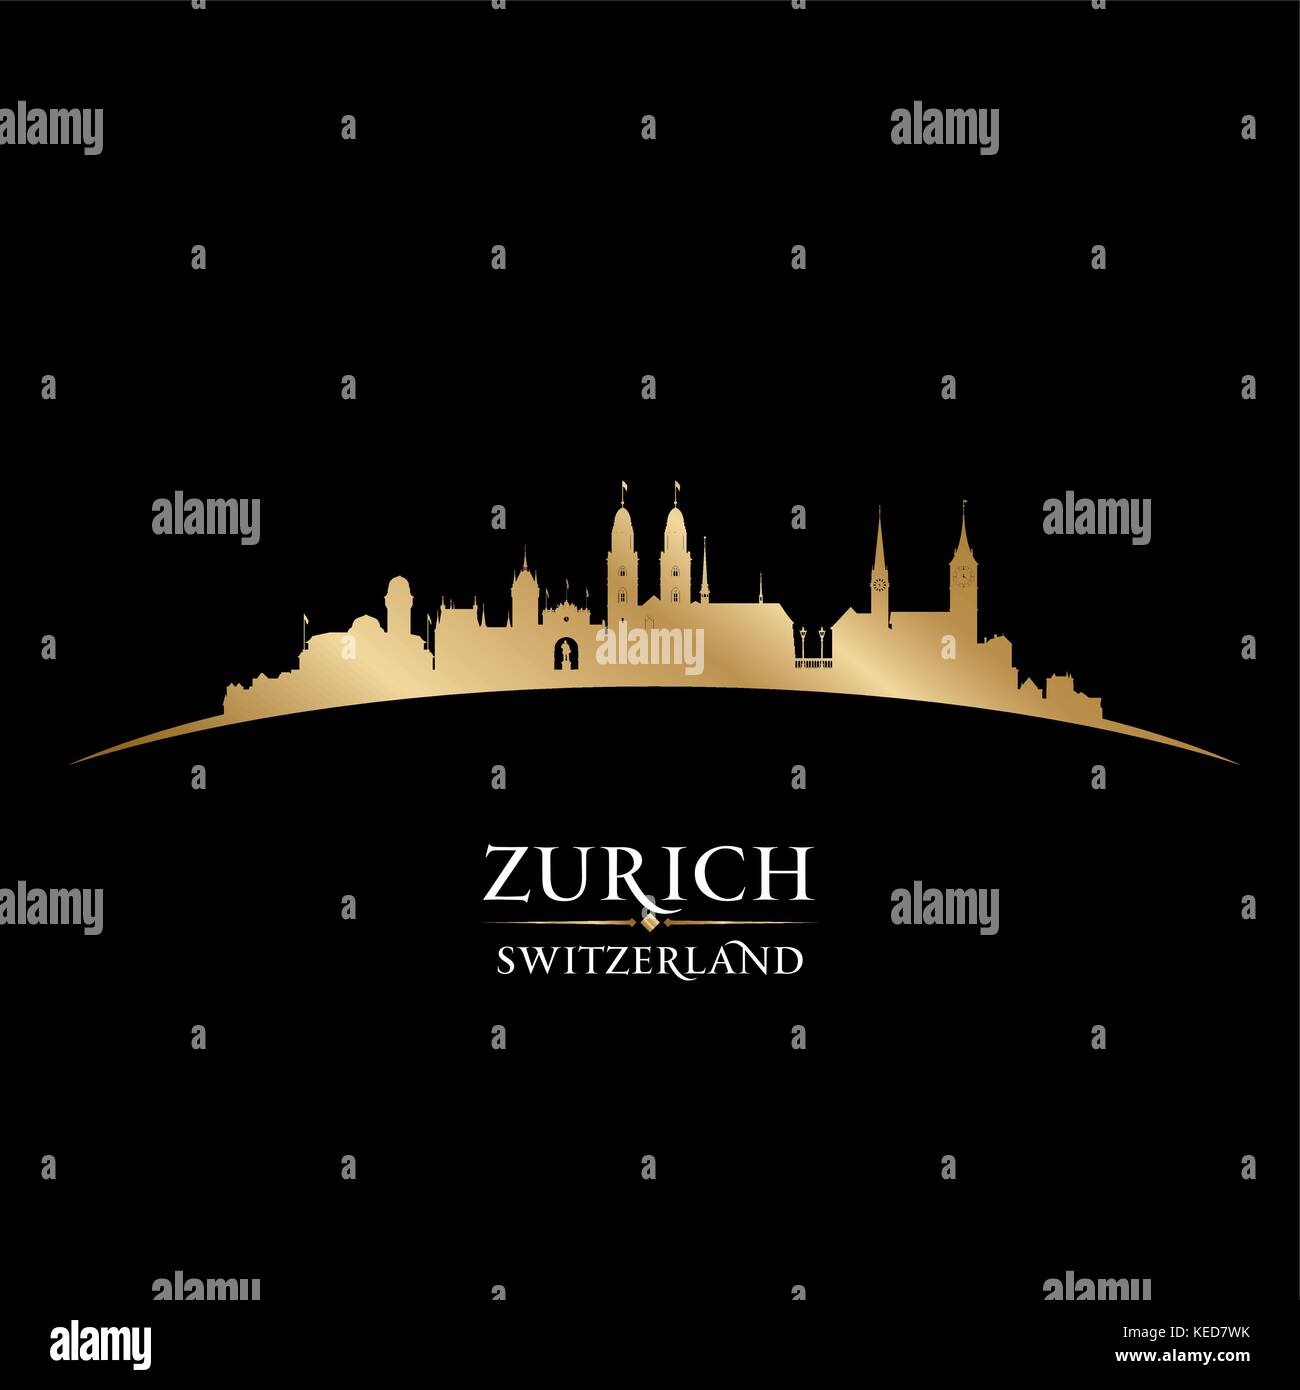 Zurich Switzerland city skyline silhouette. Vector illustration - Stock Vector